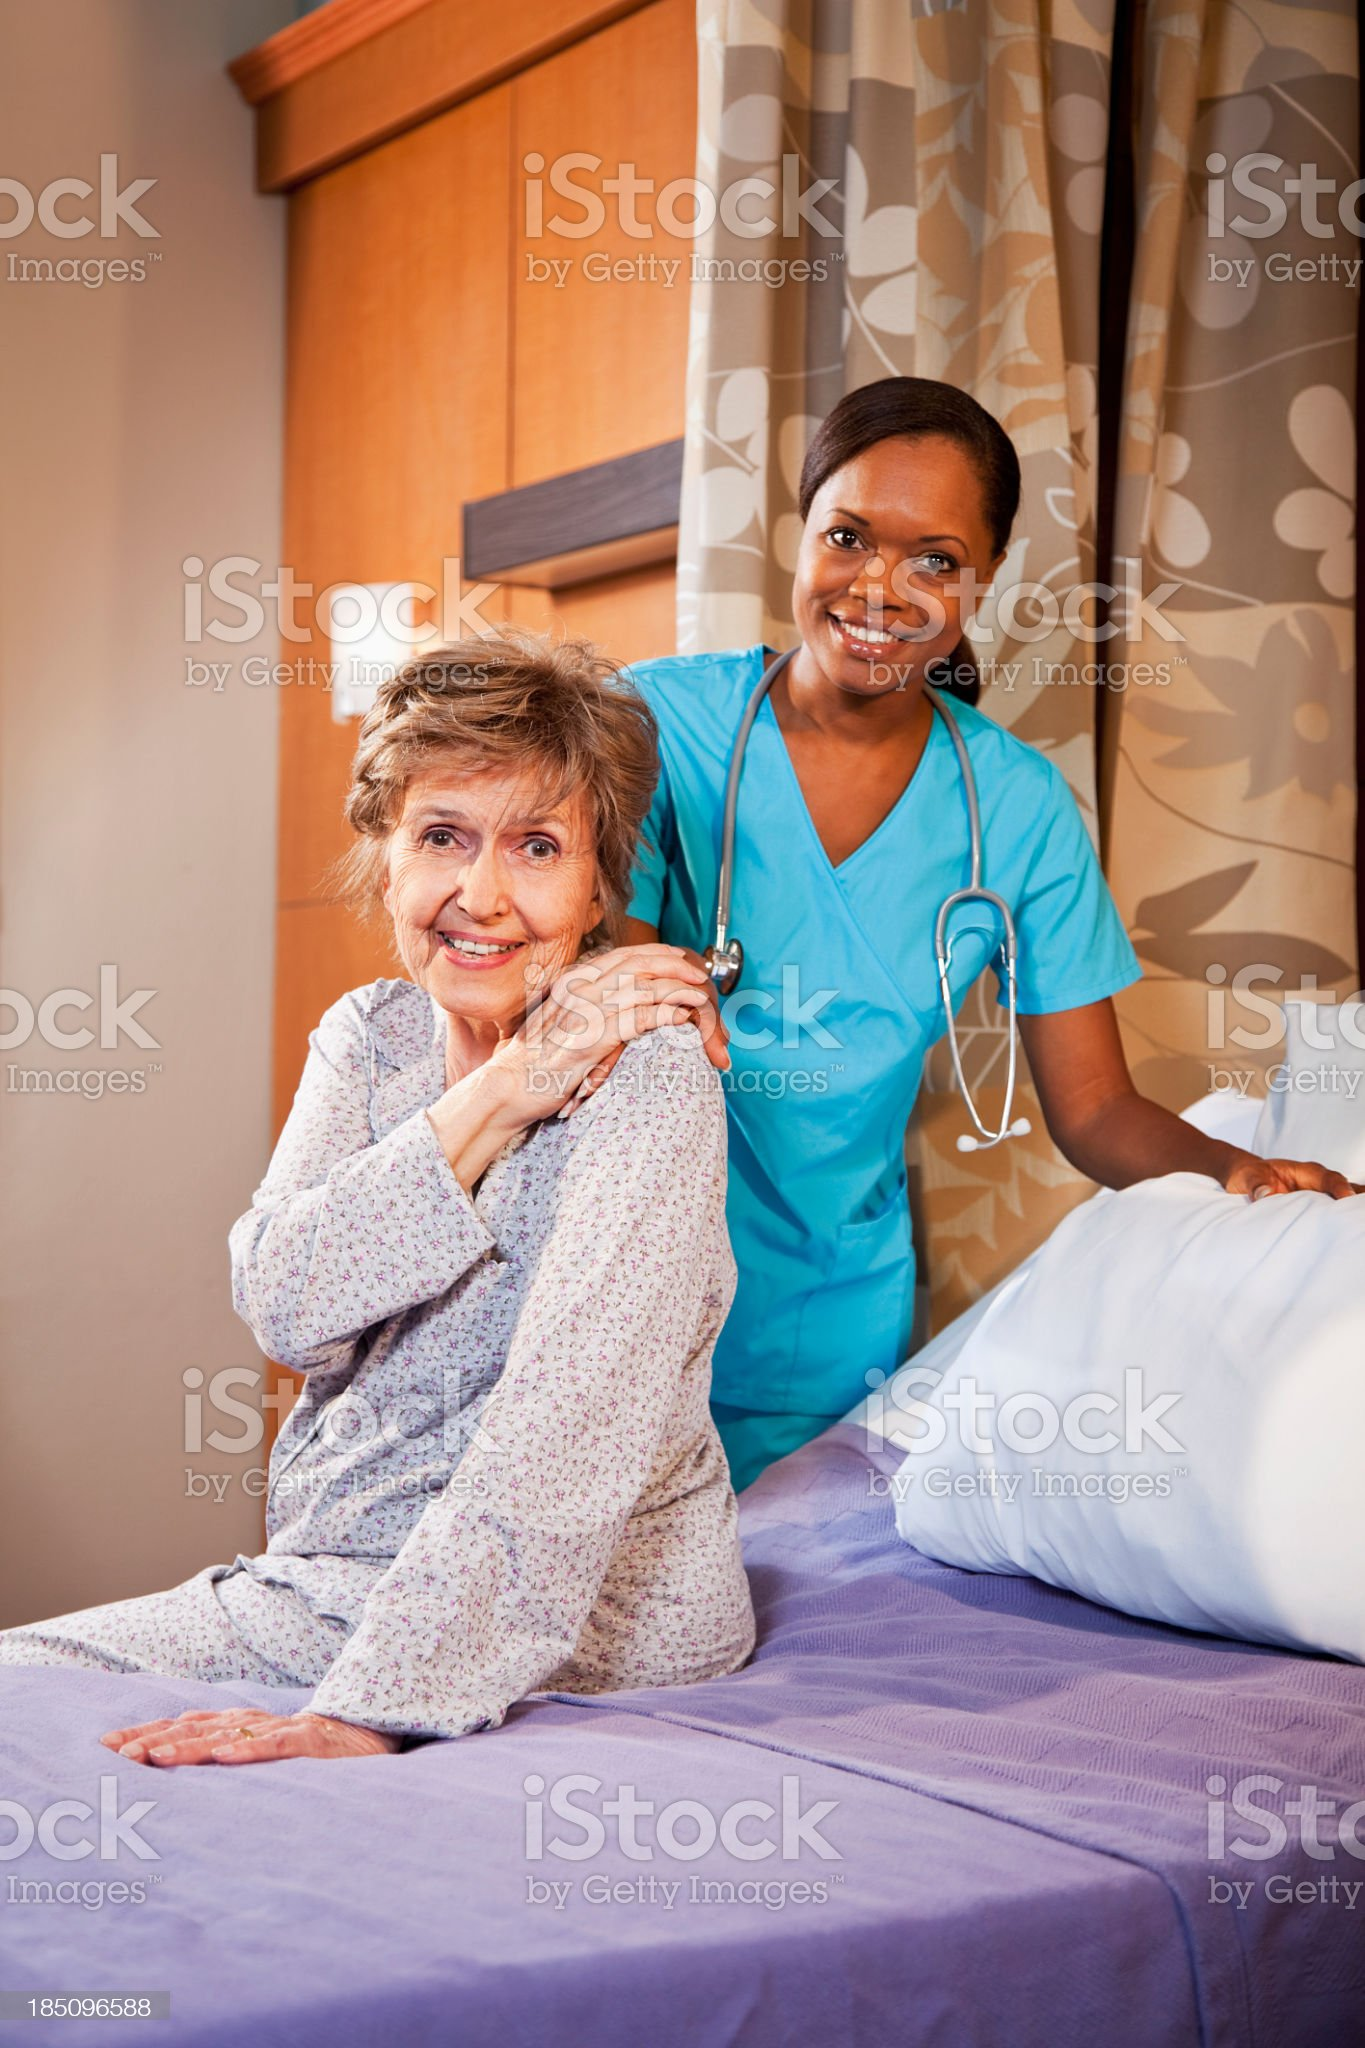 Nurse helping senior woman in hospital room royalty-free stock photo